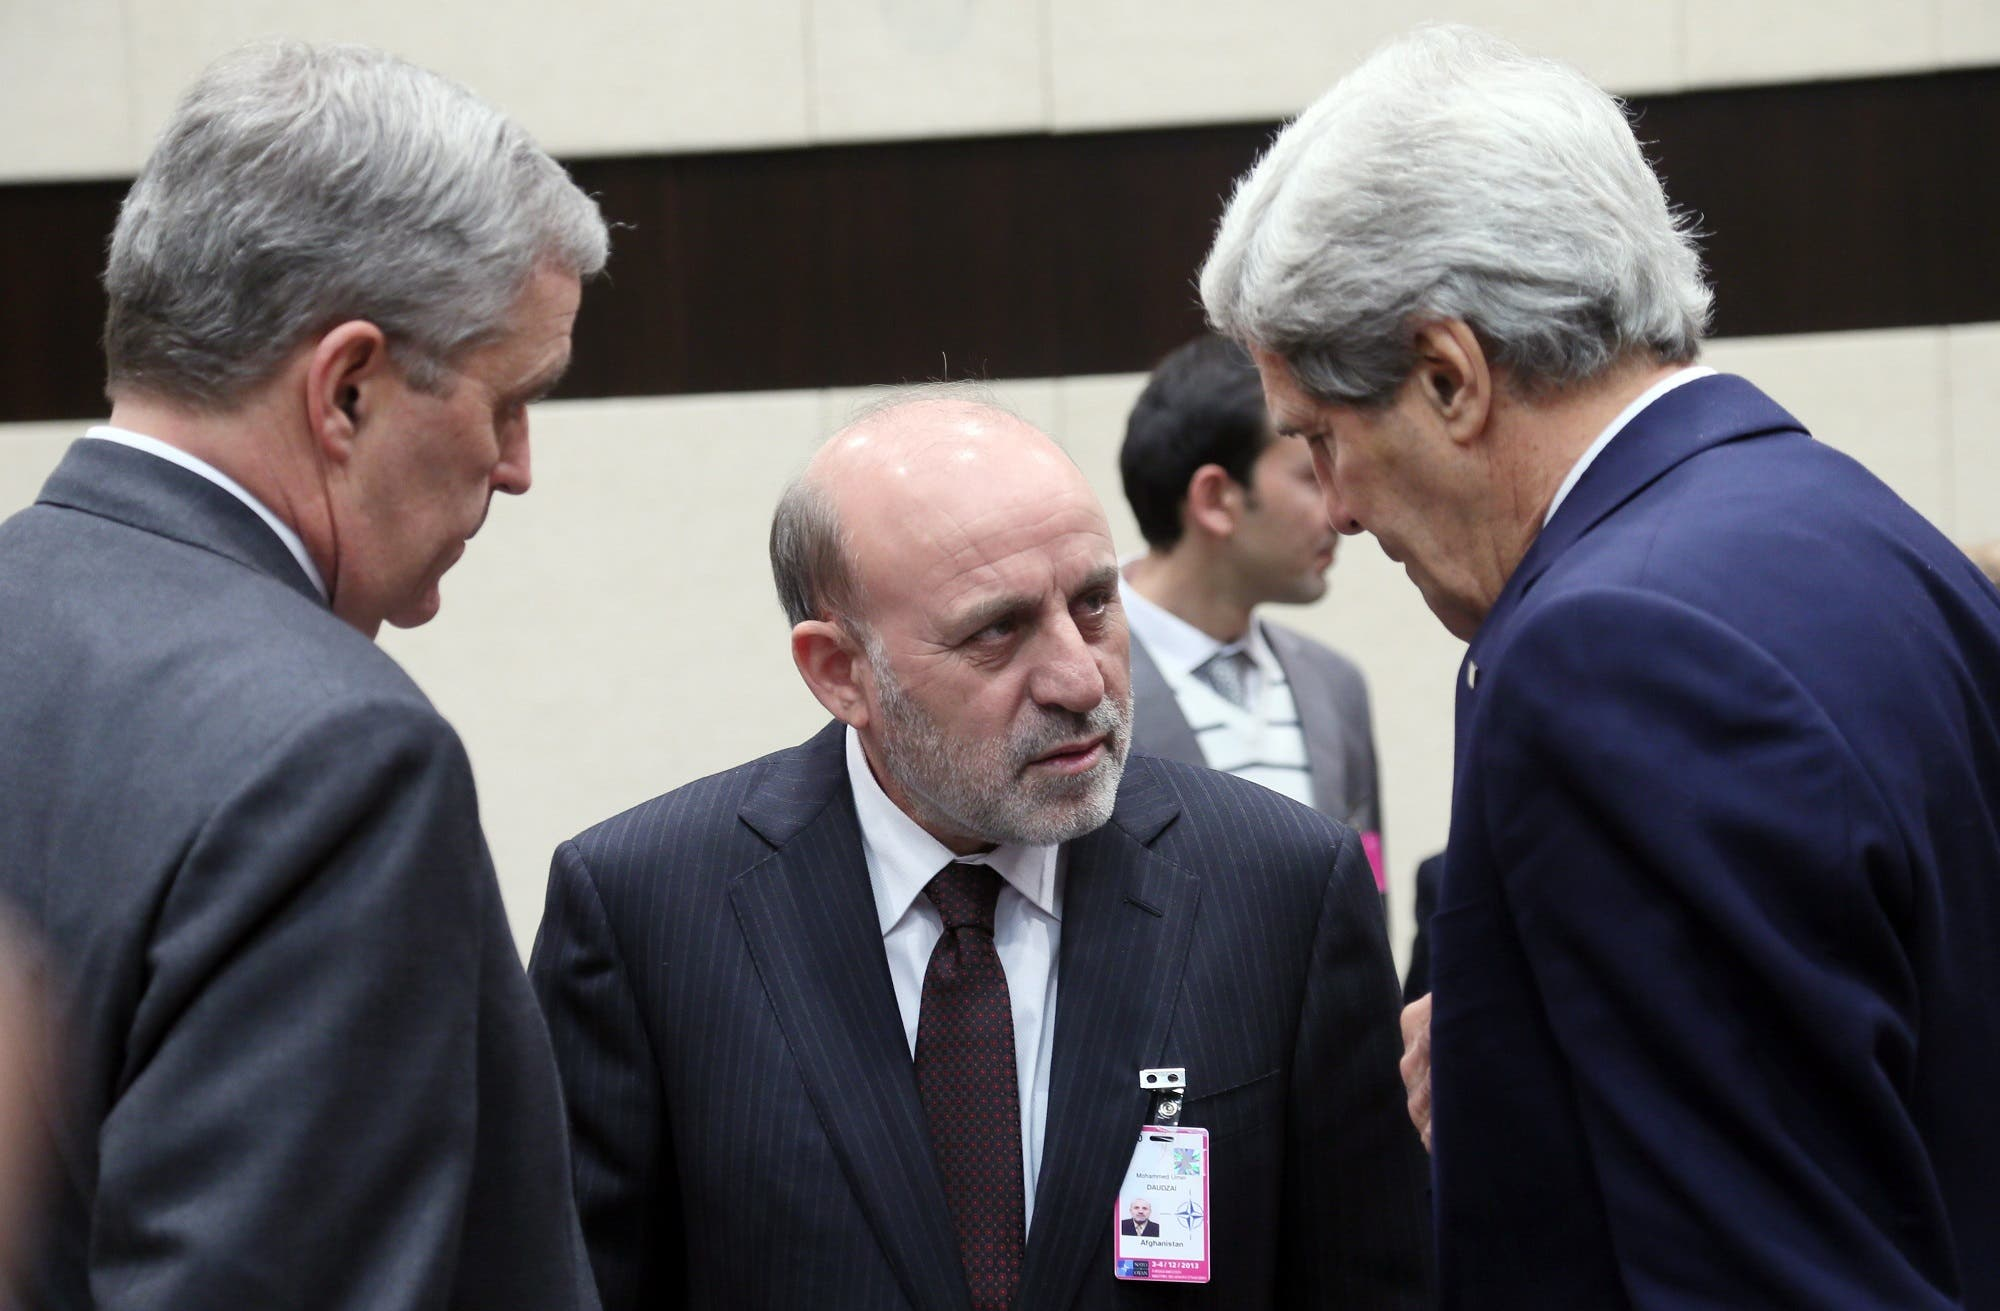 US Secretary of State John Kerry, right, speaks with Mohammed Umer Daudzai, center, during a meeting of NATO foreign ministers in Brussels on Dec. 4, 2013. (AP)